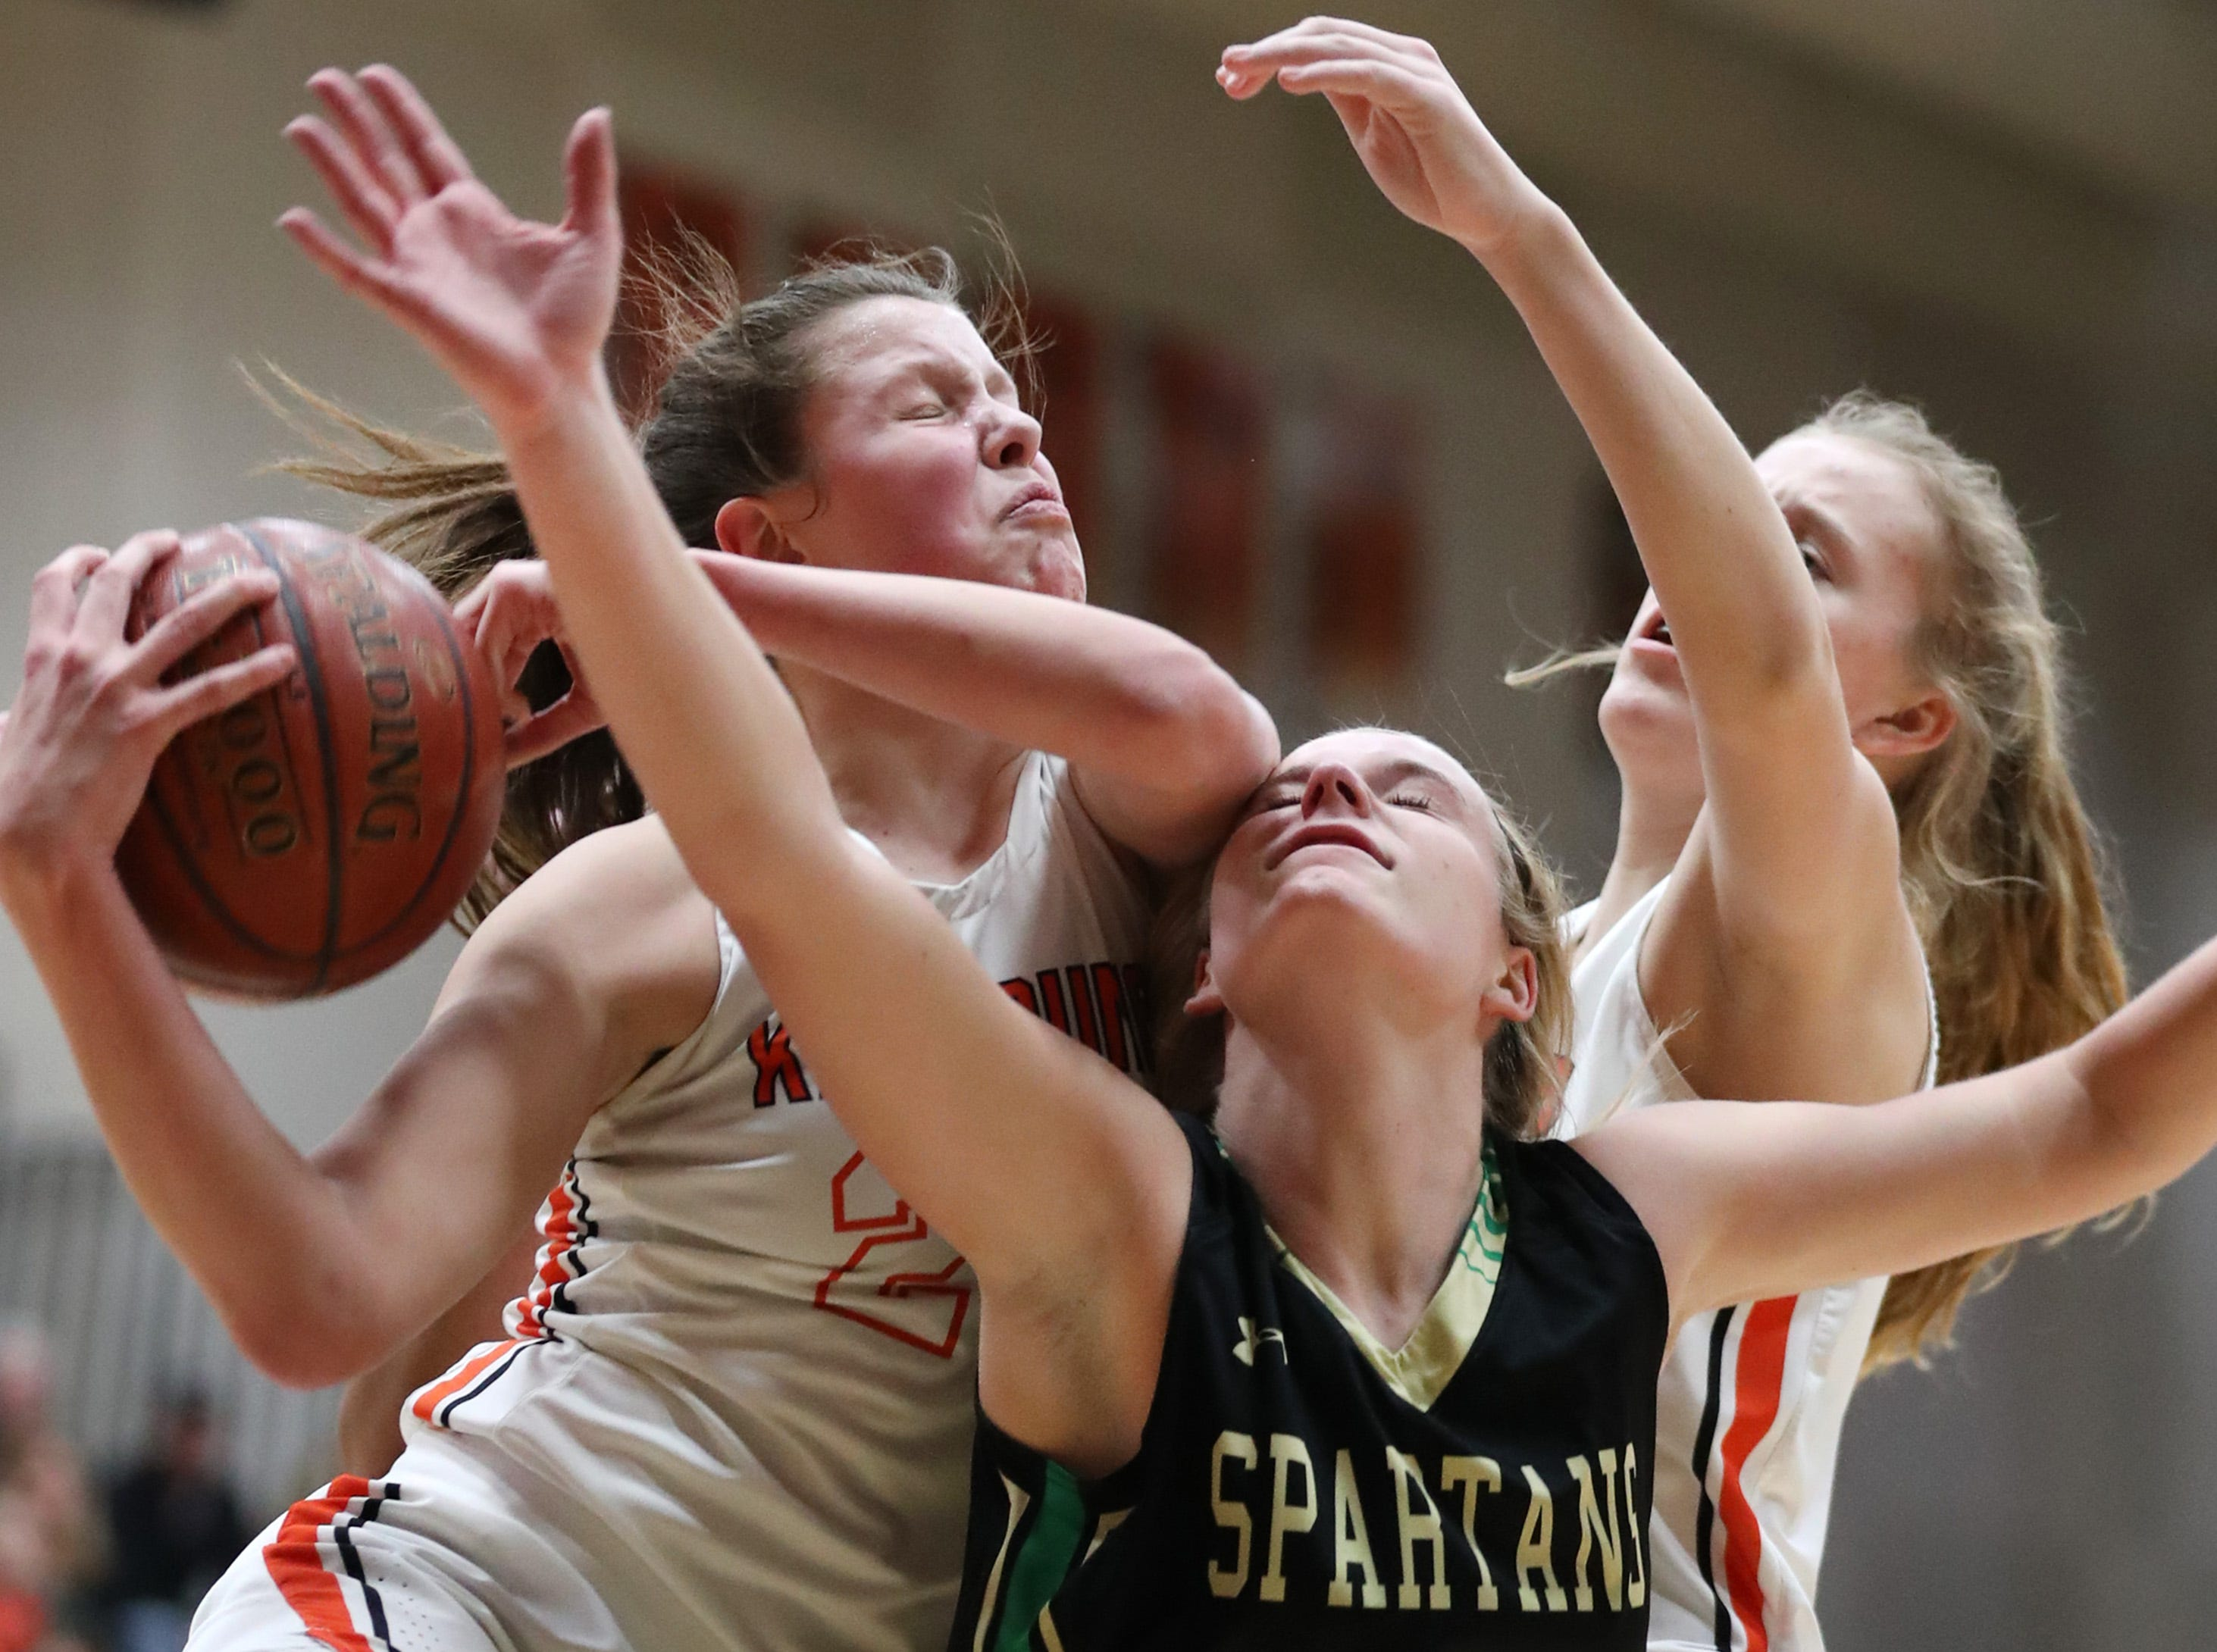 Kaukauna High School's Avery Torrey and Aspen Novy try to get a rebound away from Oshkosh North High SchoolÕs Ashley Wissink Tuesday, Feb. 5, 2019, in Kaukauna, Wis. Oshkosh North defeated Kaukauna High School 77-51.